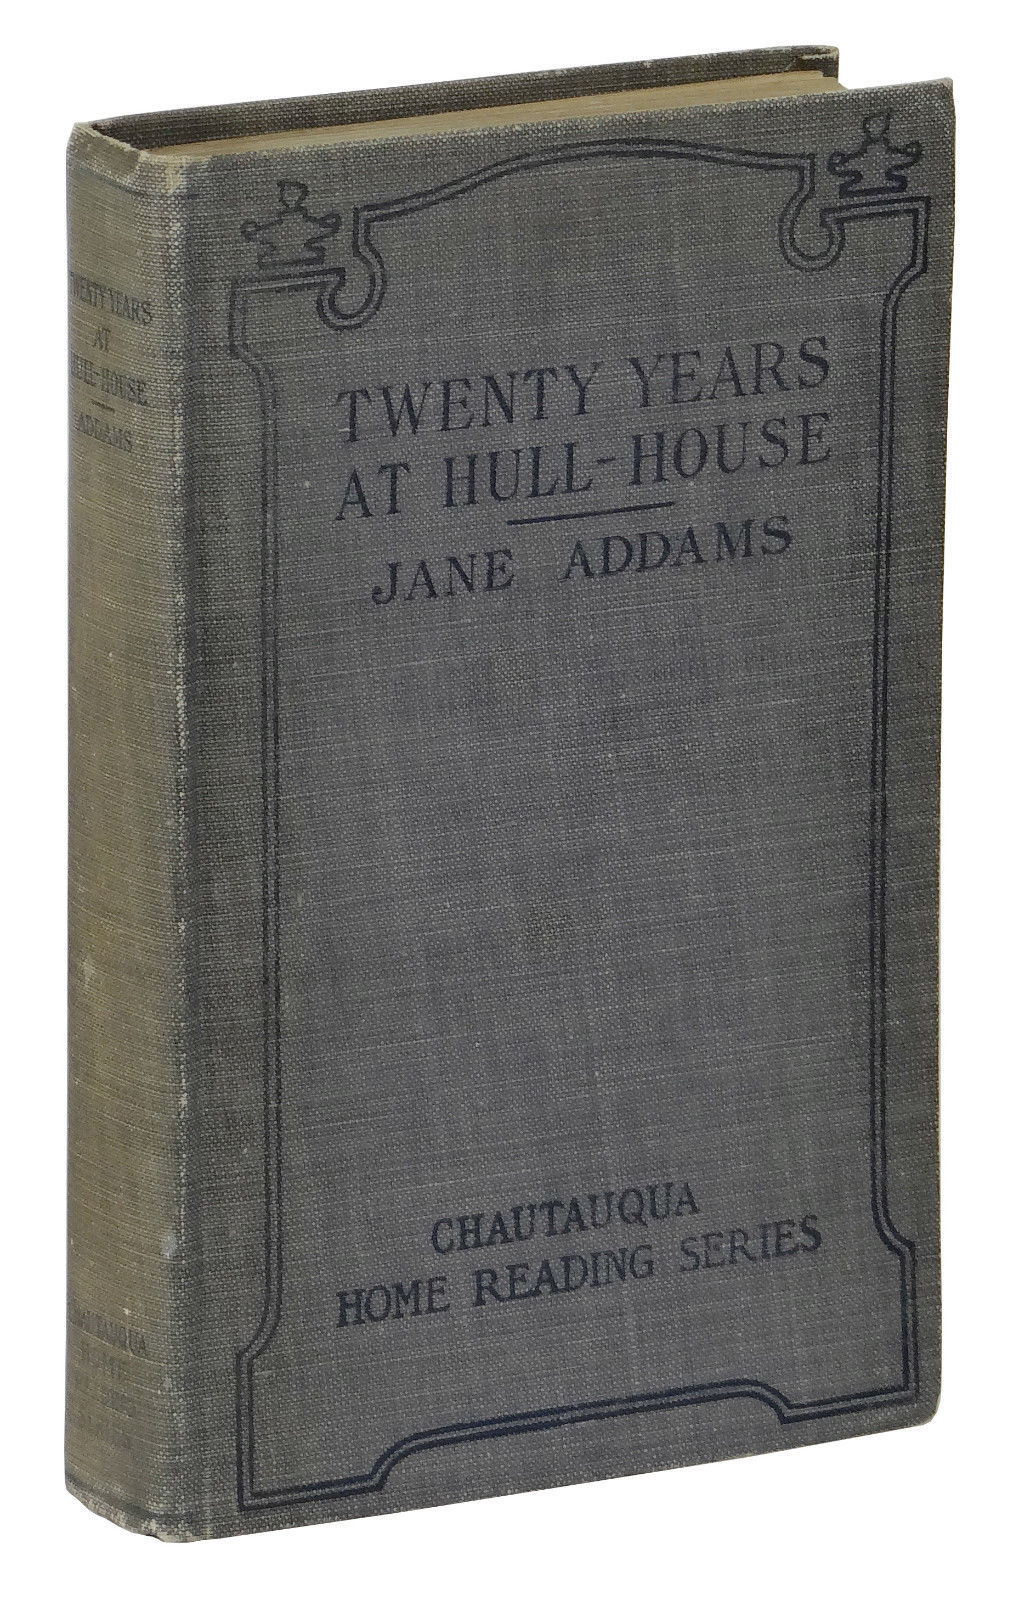 twenty years at hull house Twenty years at hull-house with autobiographical notes by jane addams hull-house, chicago author of democracy and social ethics, newer ideals of peace, the spirit of youth and the city streets, etc.